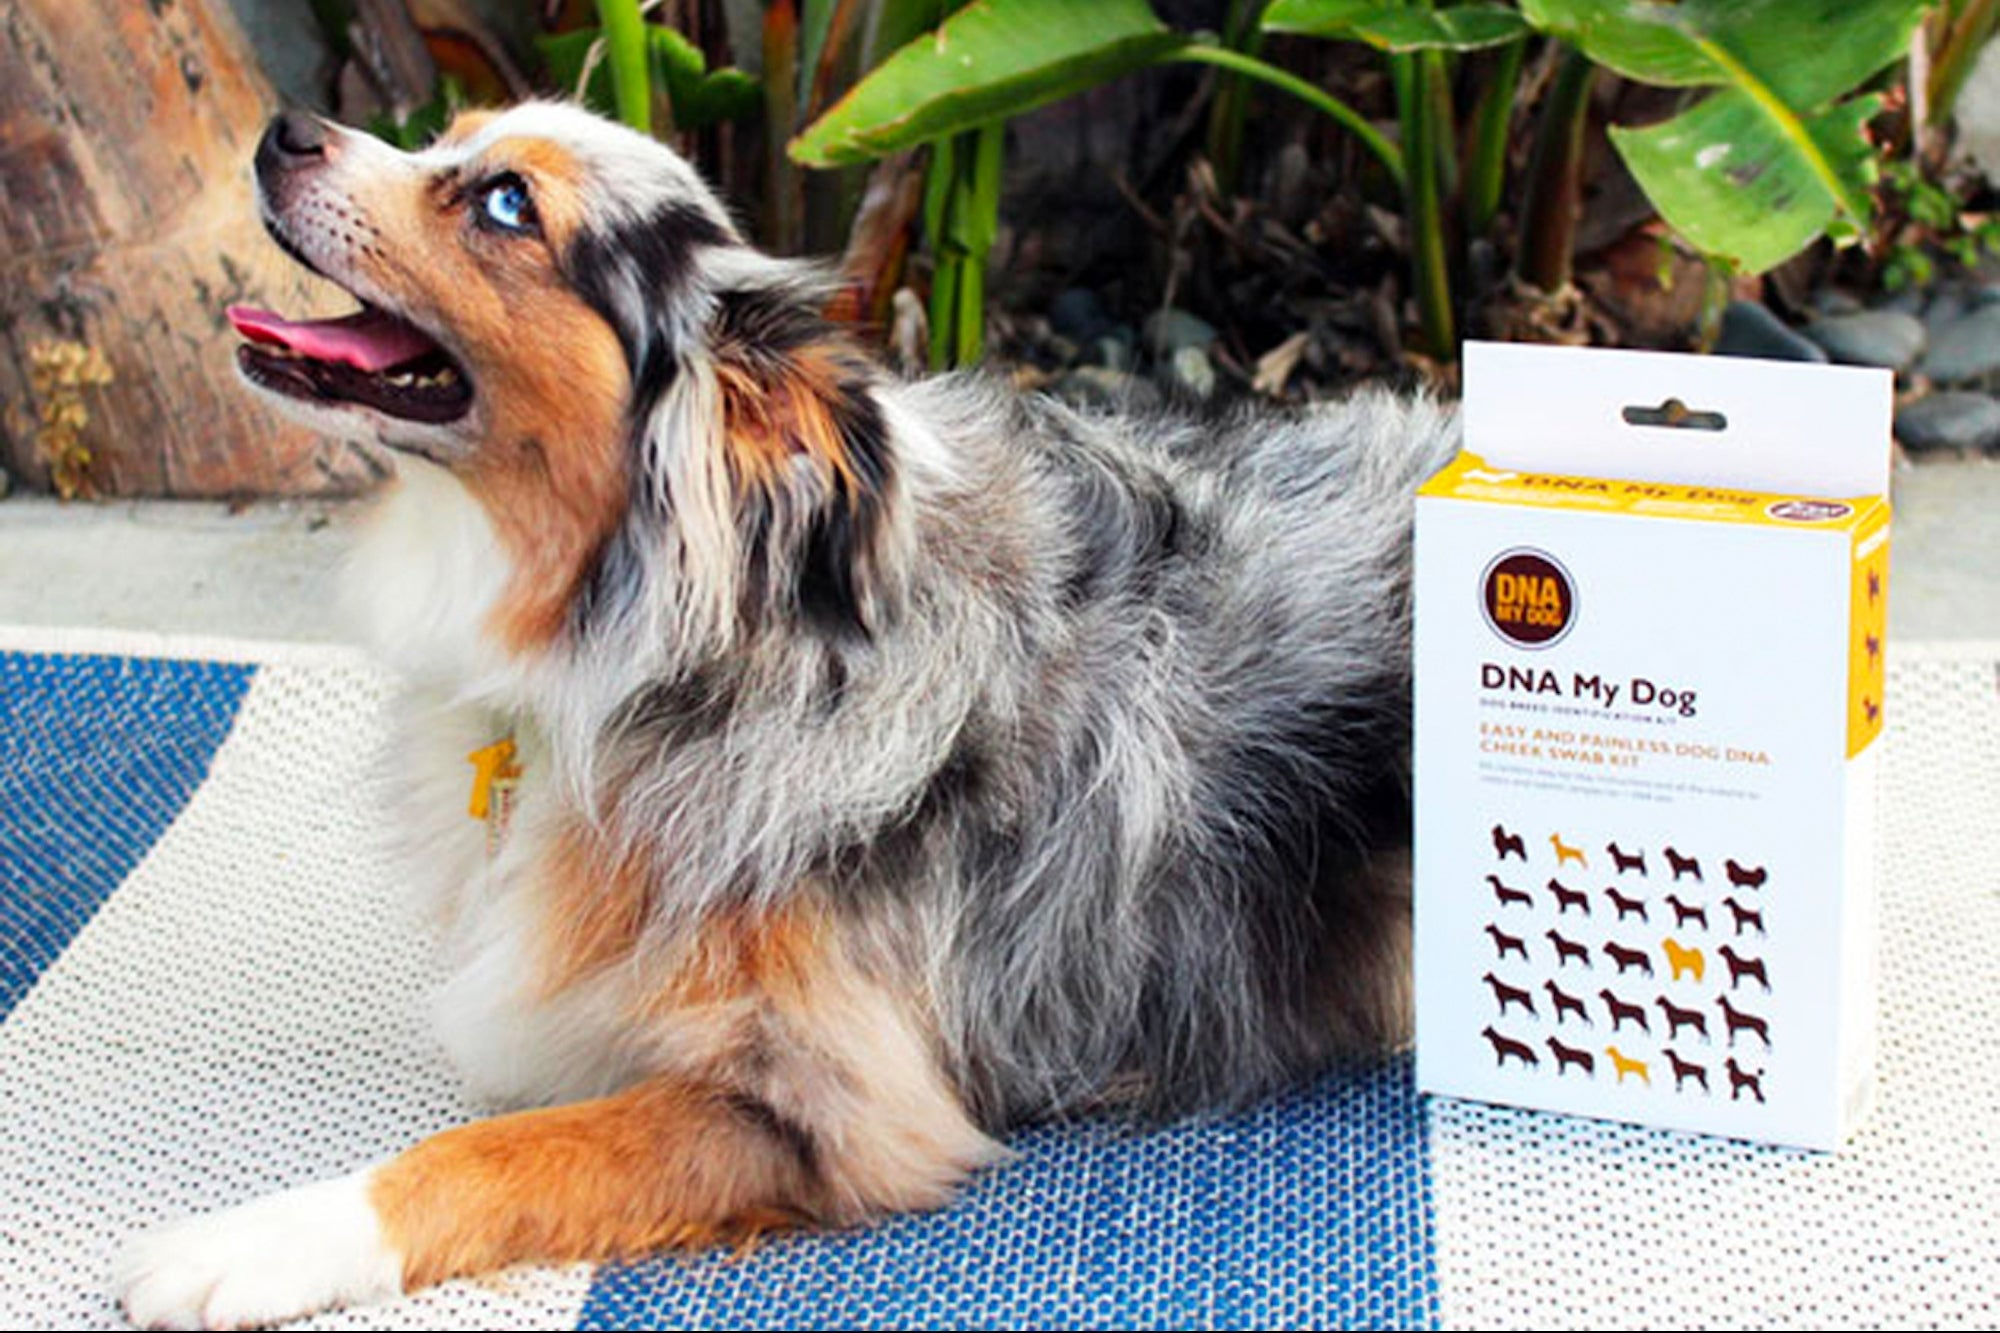 Save Money and Protect Your Dog With This Highly Rated Dog DNA Breed Identification Kit